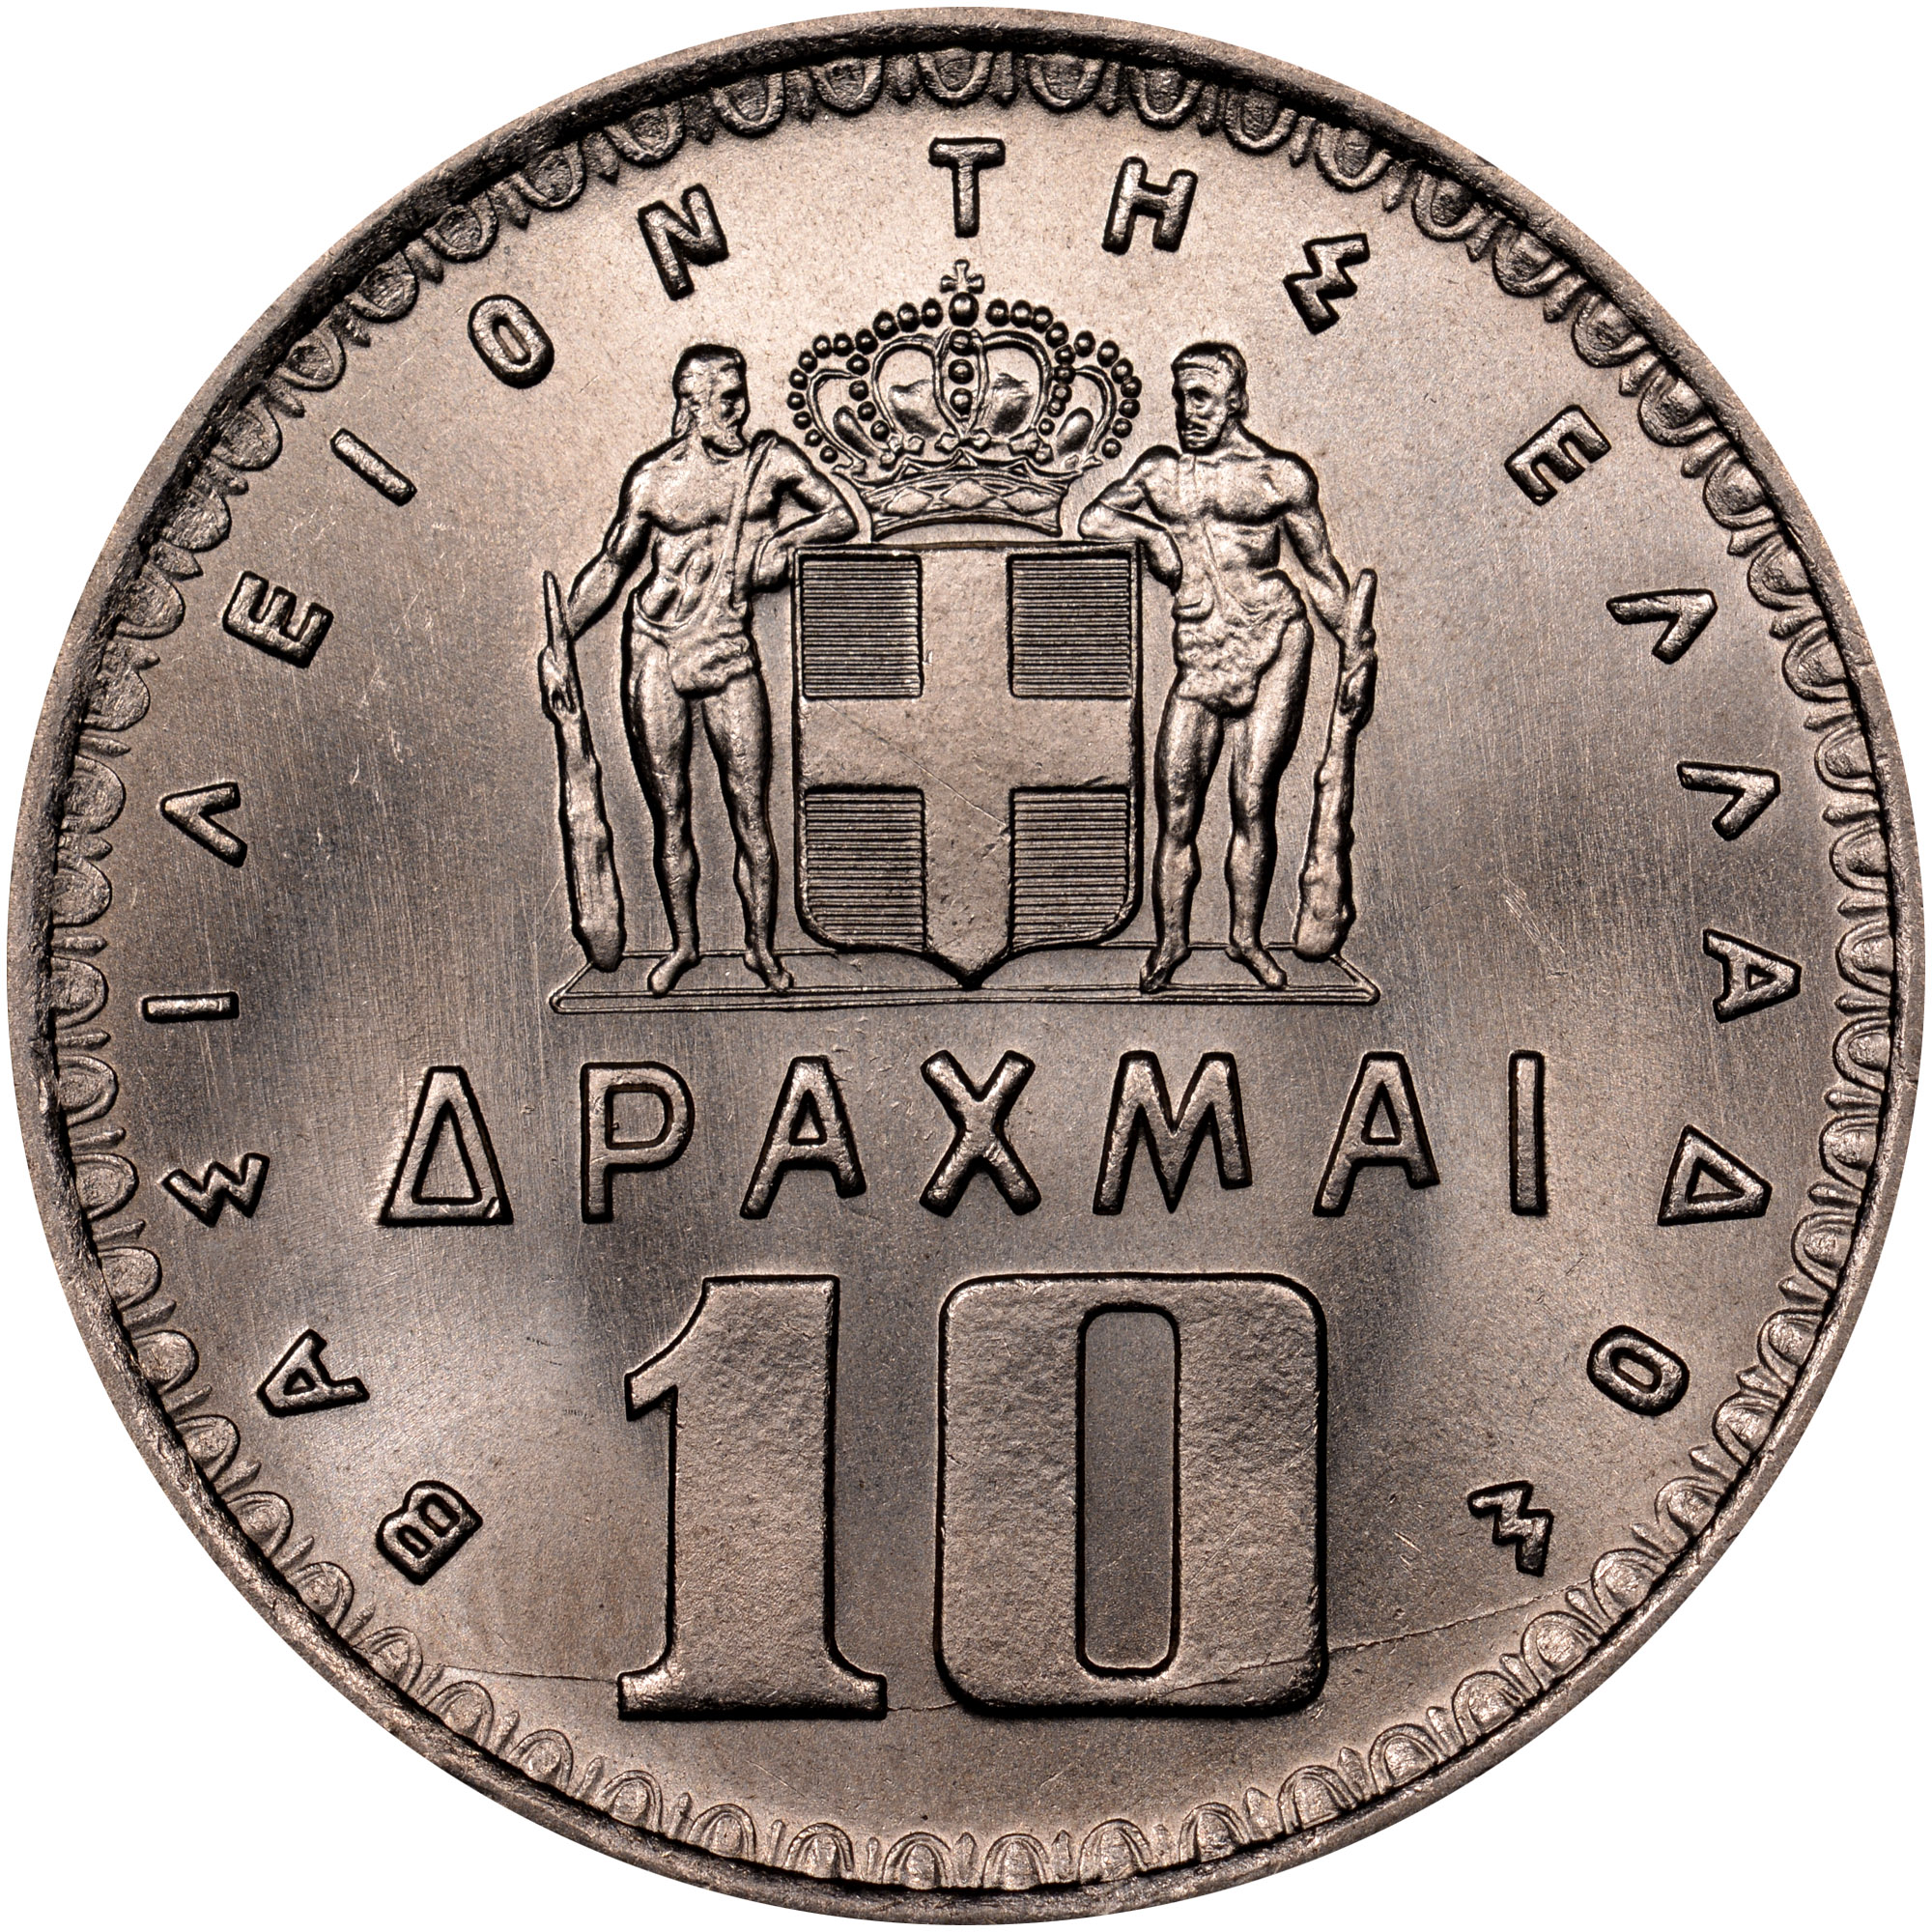 Paul I Crowned Arms with Supporters Greece 1959-10 Drachmai Nickel Coin